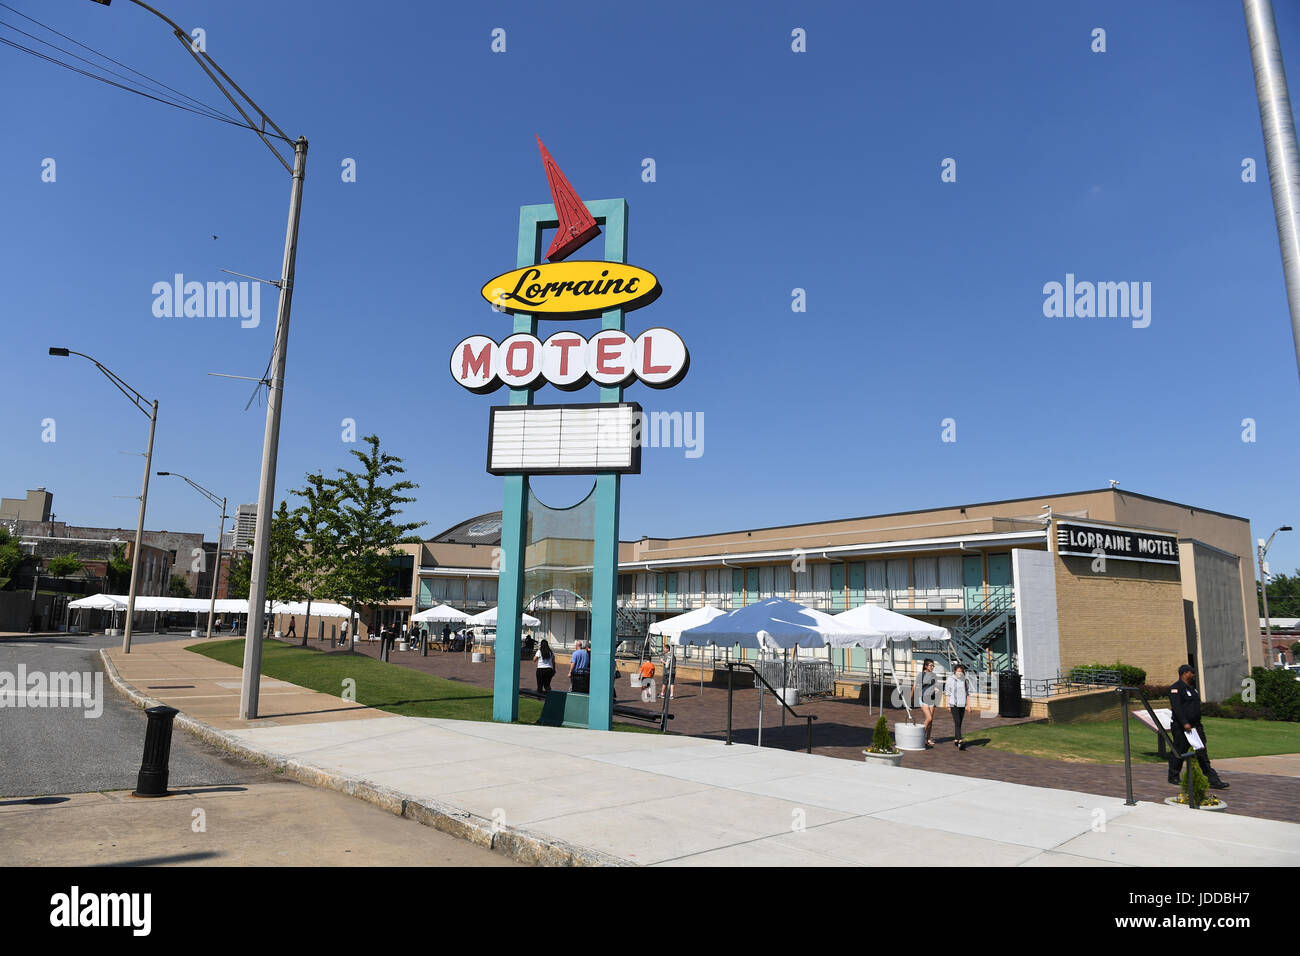 Memphis, TN, USA - June 9, 2017: The Lorraine Motel and site of the National Civil Rights Museum where Dr. Martin Stock Photo